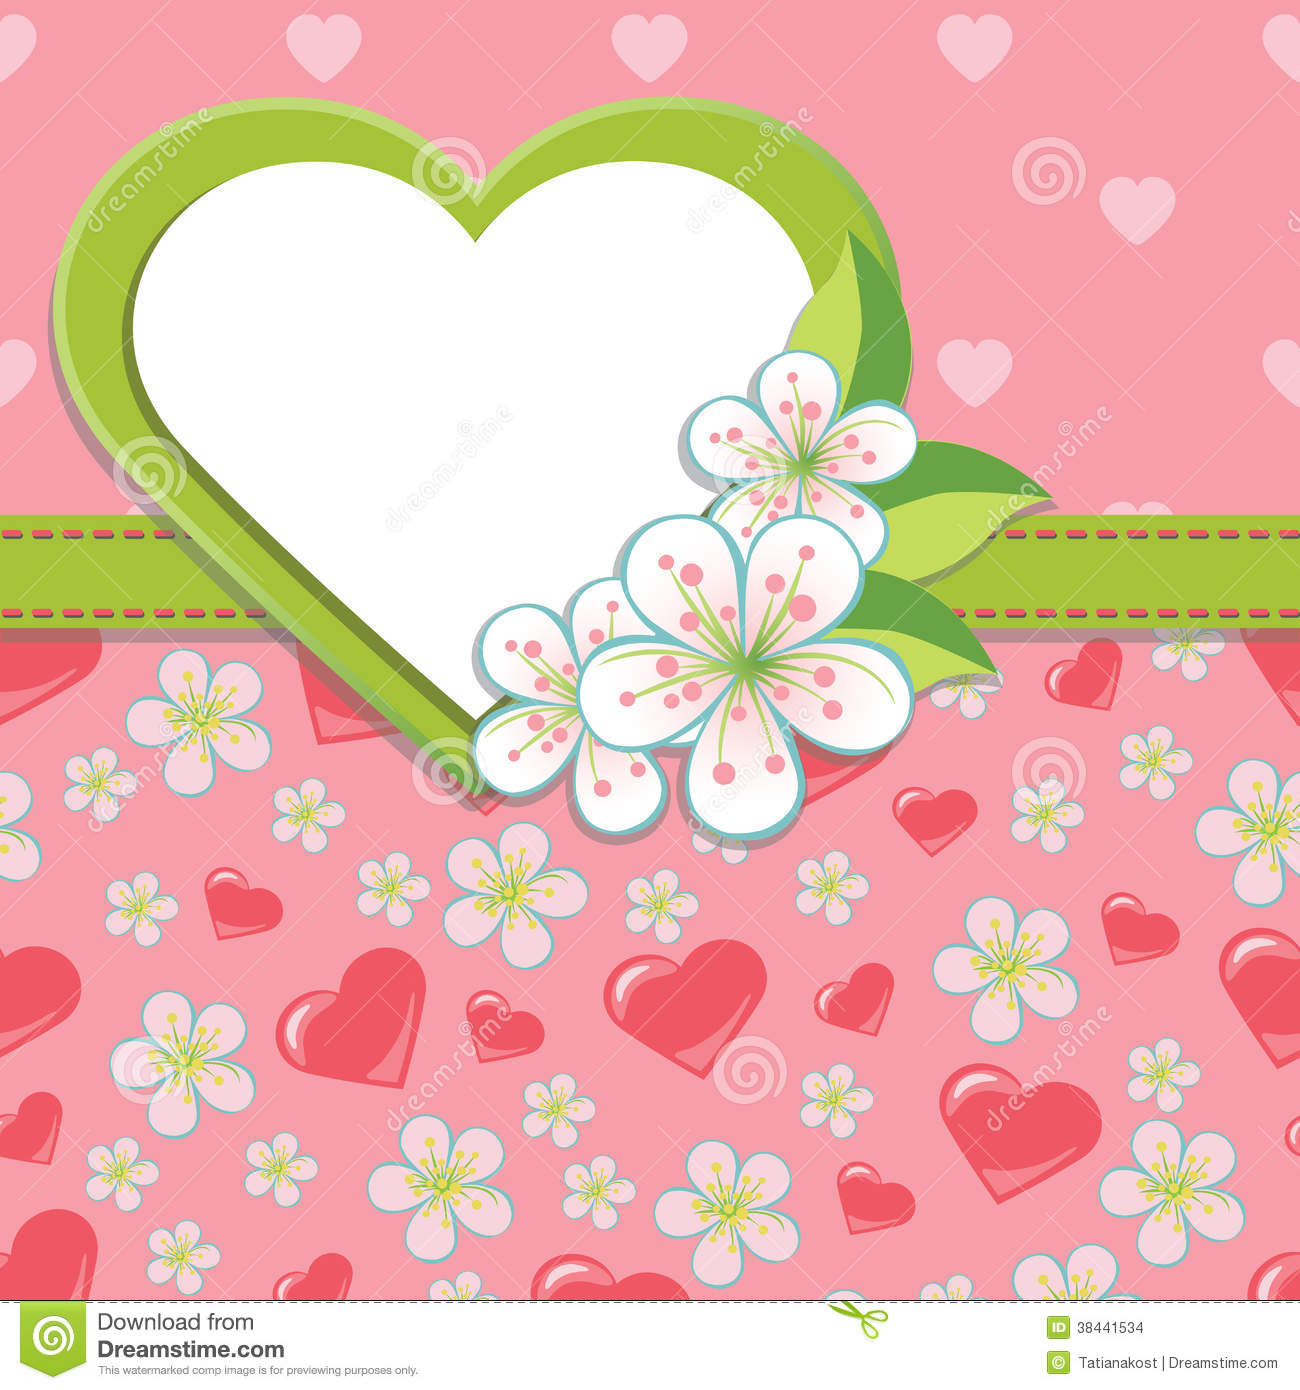 Wedding Design template.Cherry flowers and hearts